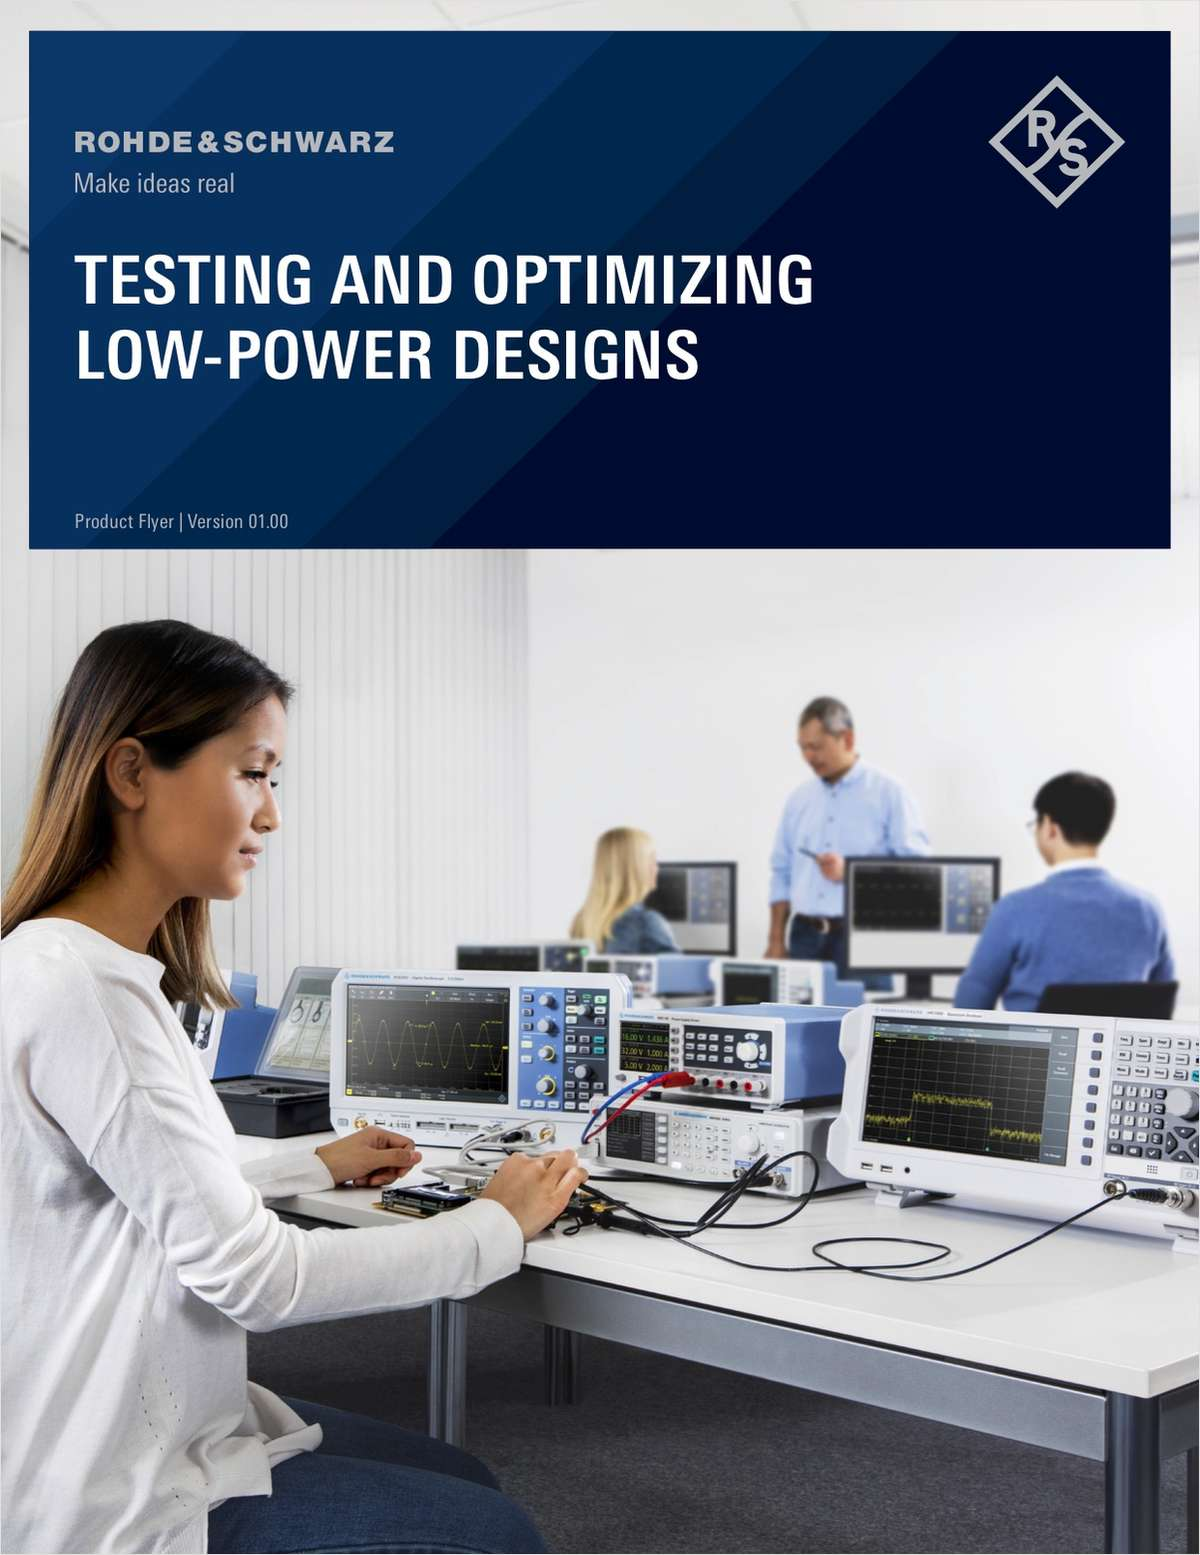 TESTING AND OPTIMIZING LOW-POWER DESIGNS